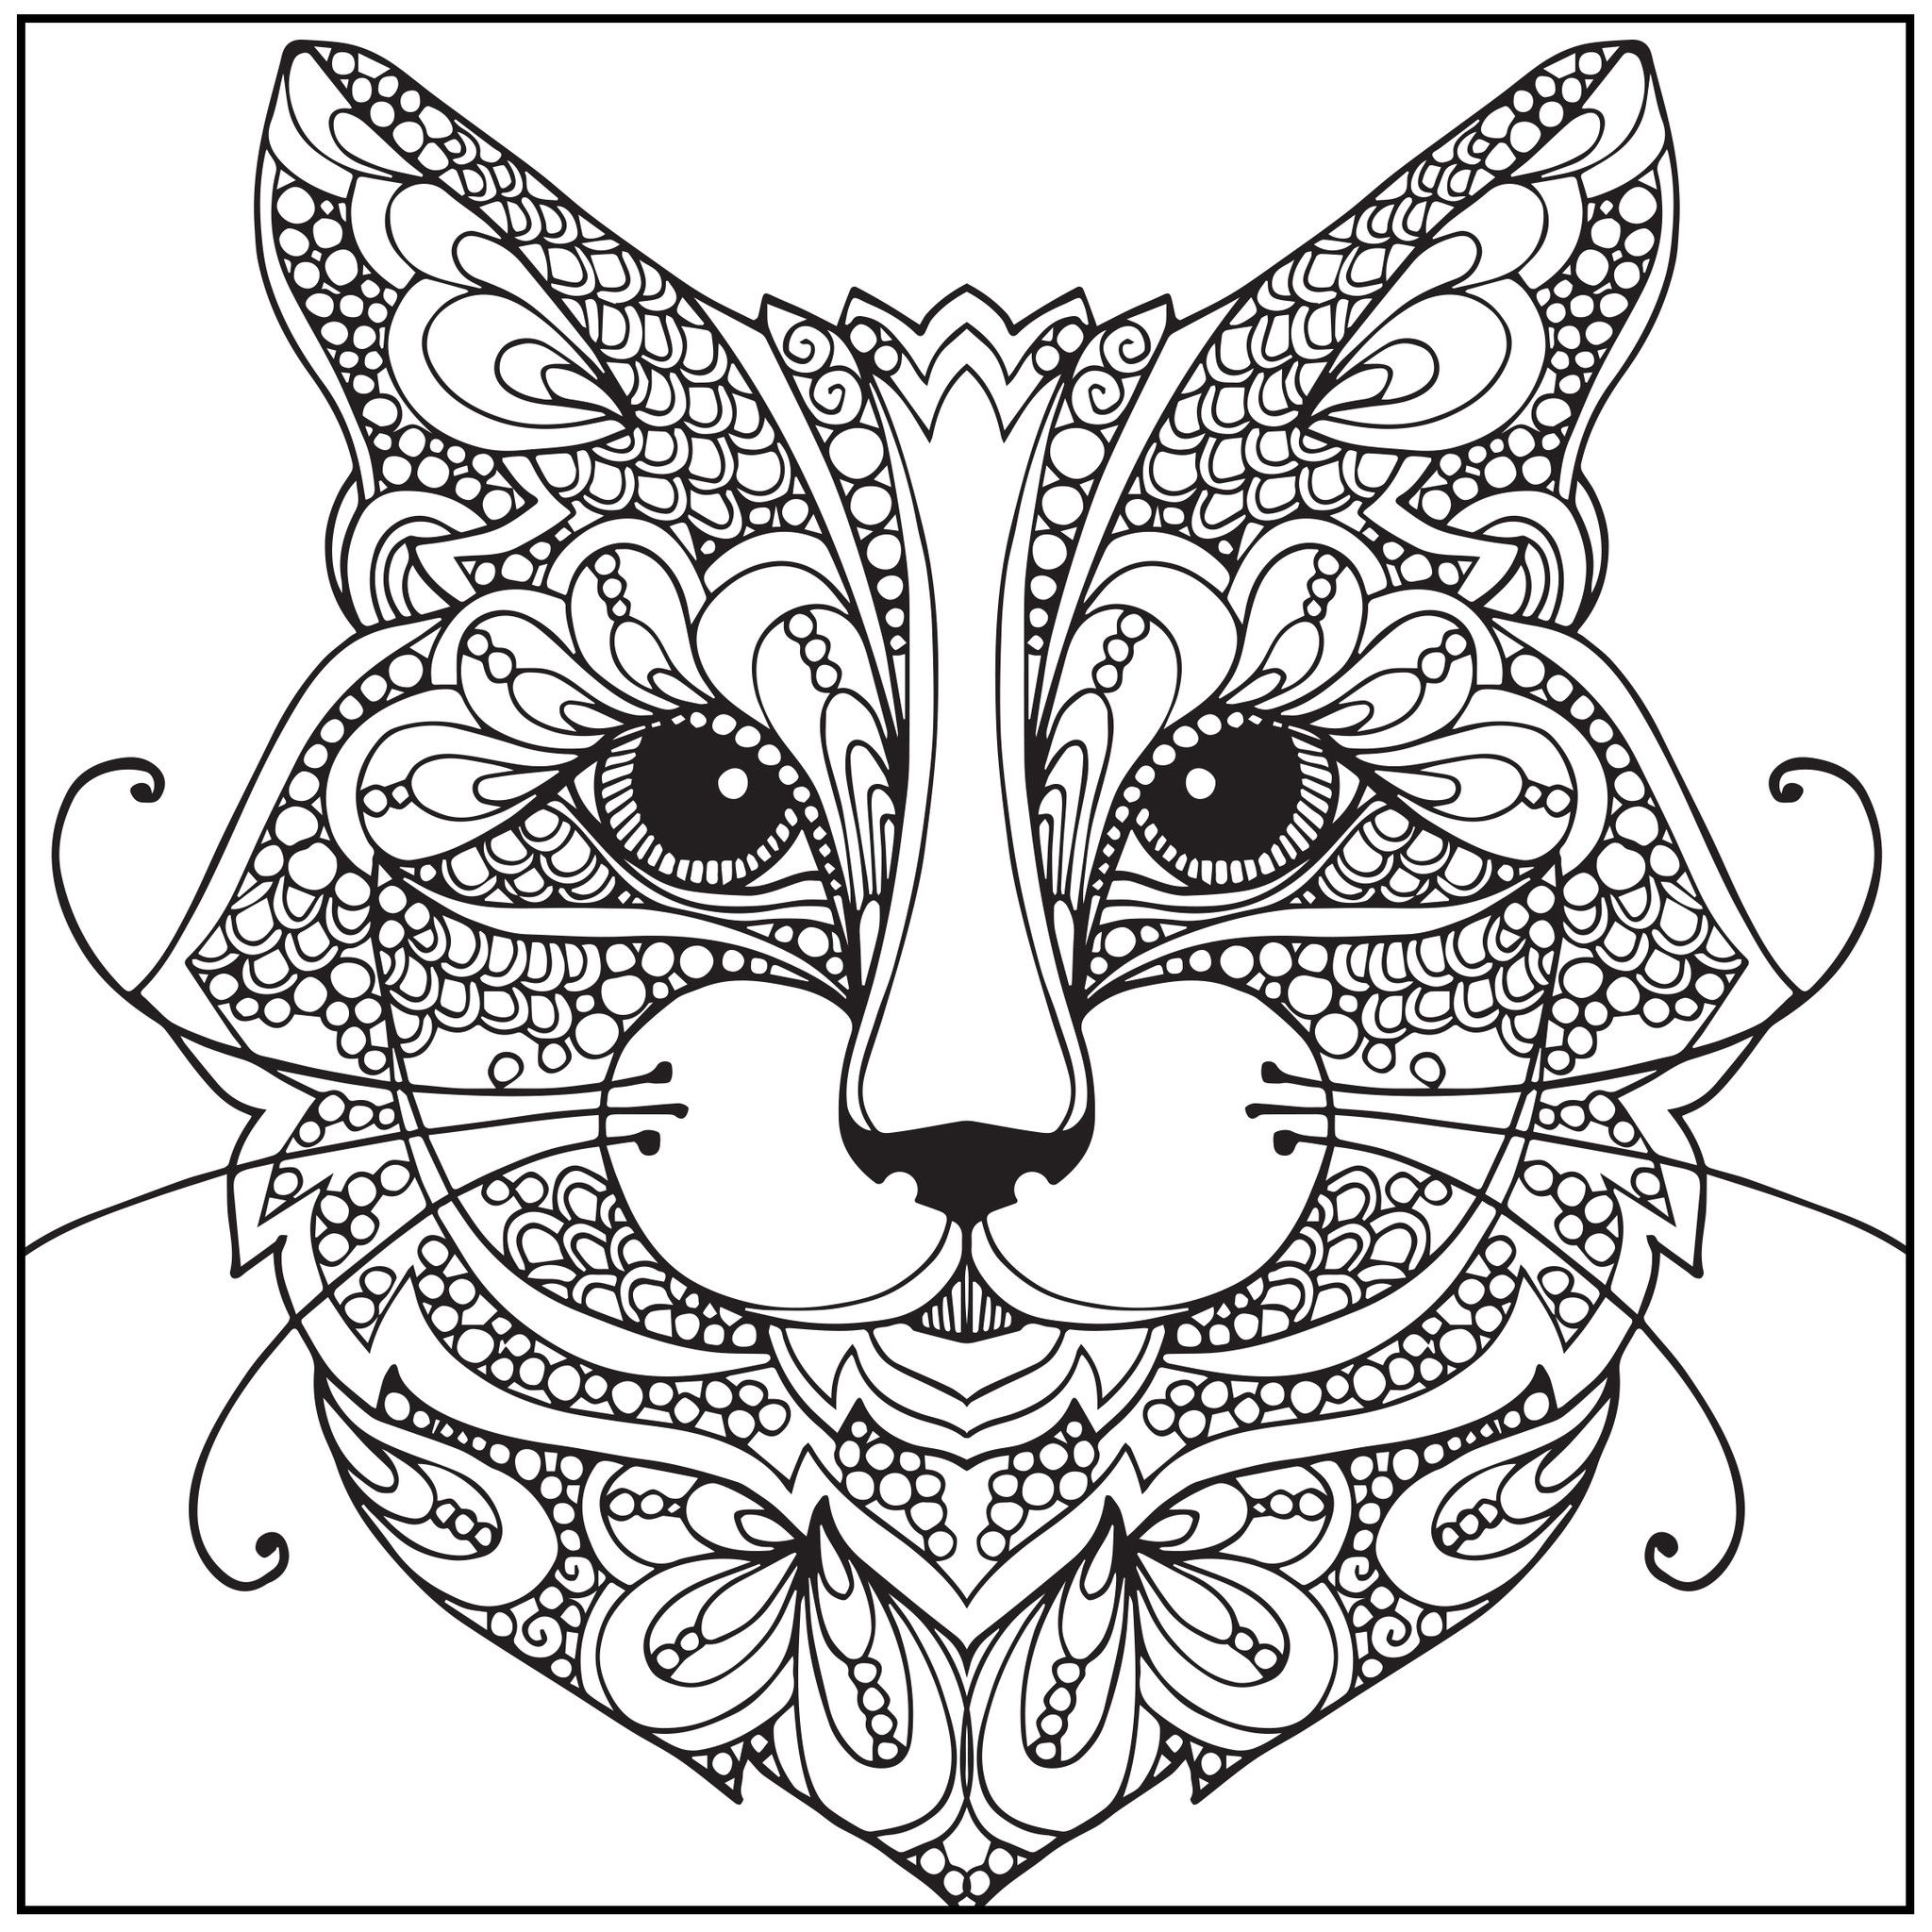 Stress relieving cats coloring - Color With Music Wild About Cats Adult Coloring Book Blank Page